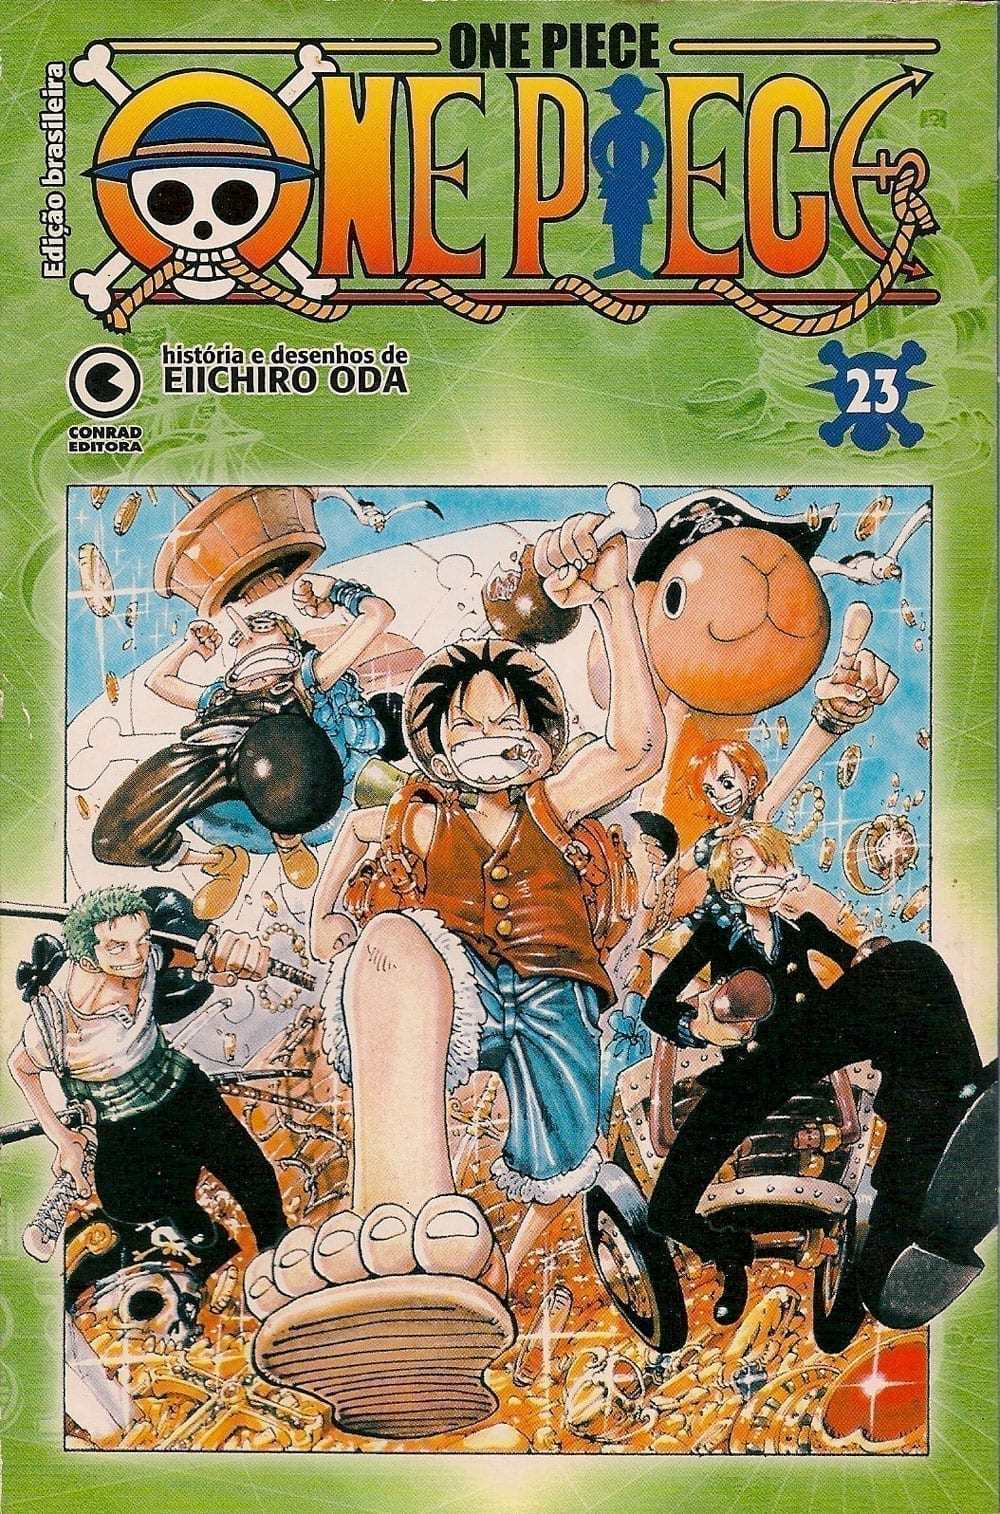 Capa: One Piece - Conrad 23